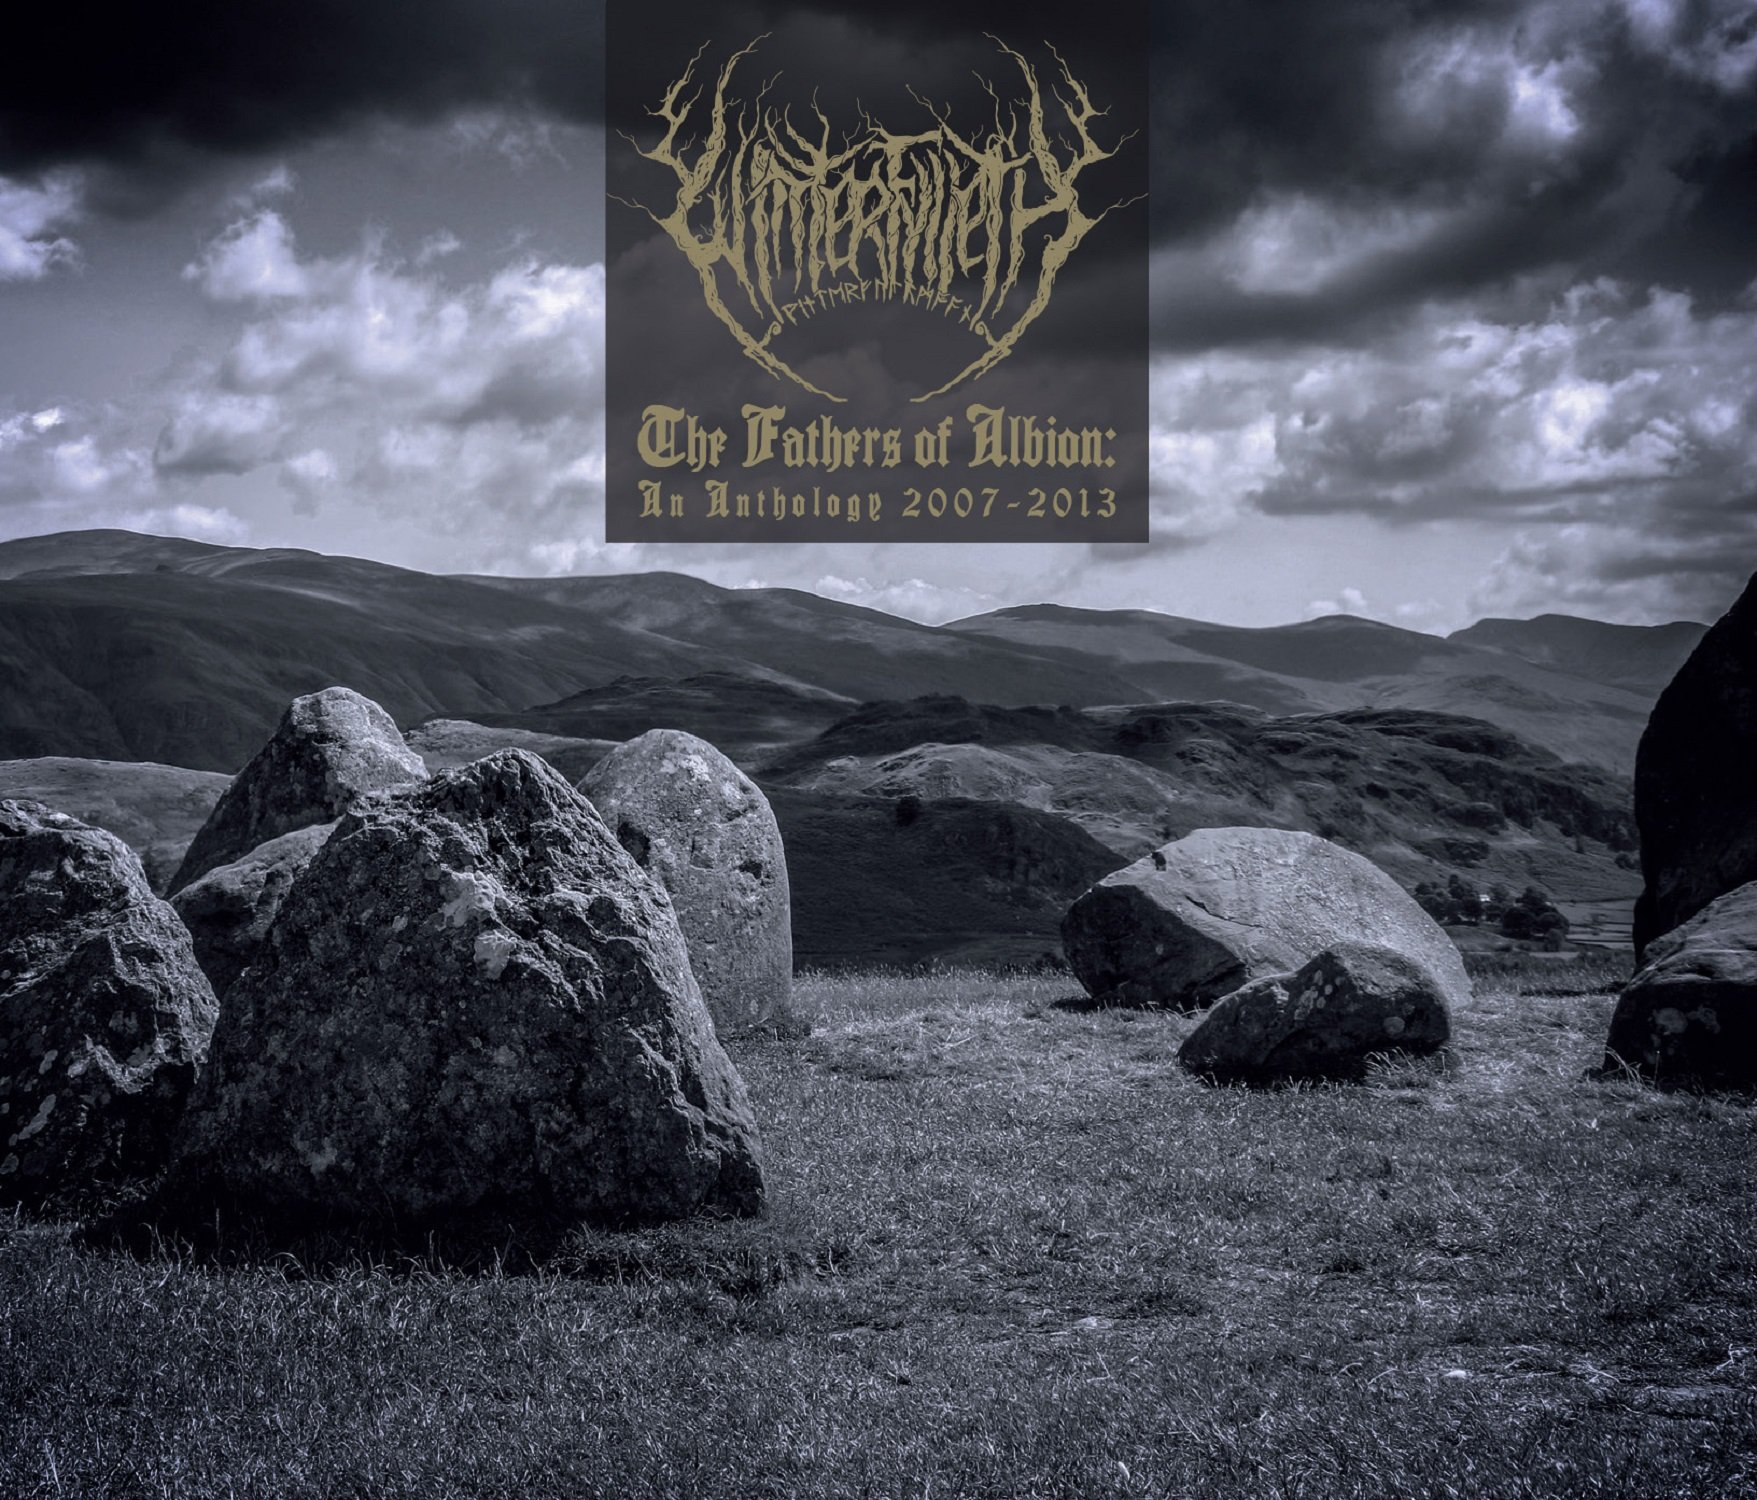 Winterfylleth - Fathers of Albion-An Anthology 2007-2012 (4PC)